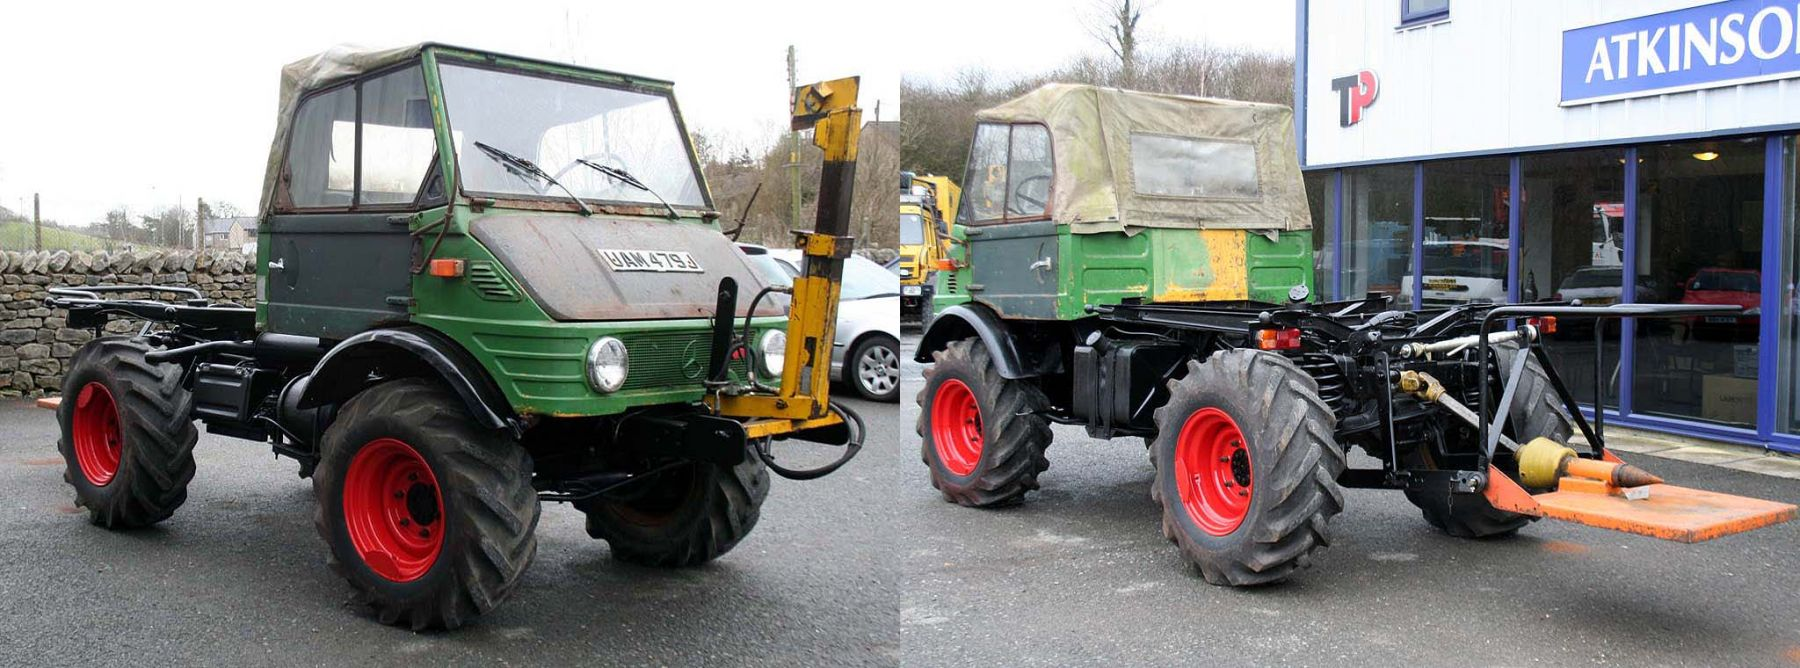 Restoration Project Sees Mog Brought Up to Working